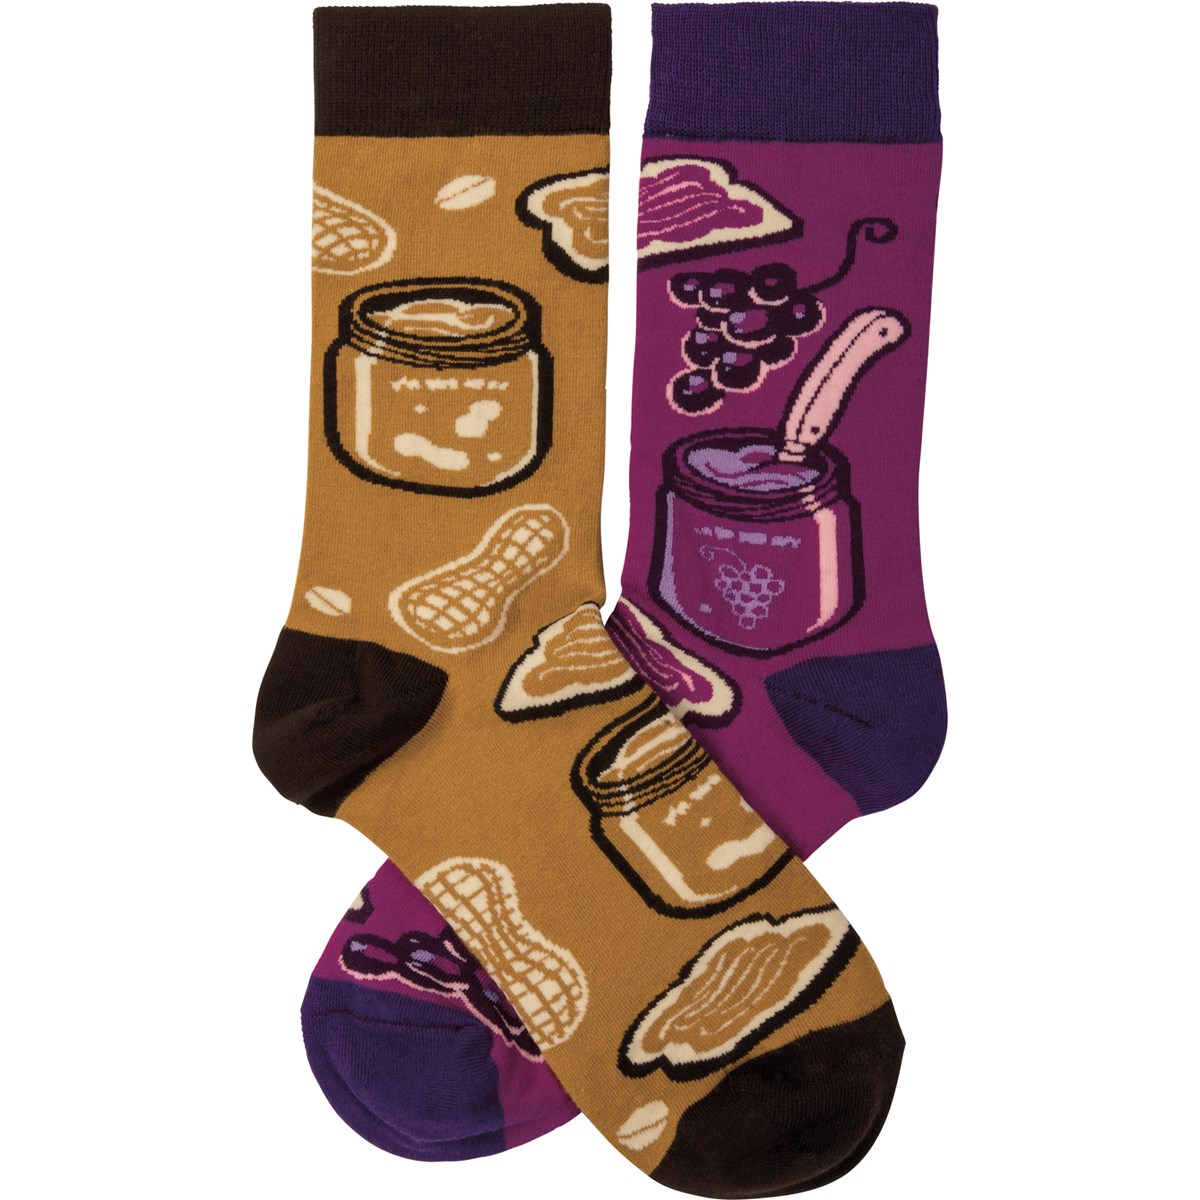 Socks - Peanut Butter & Jelly - One Size Fits Most - Cotton, Nylon, Spandex